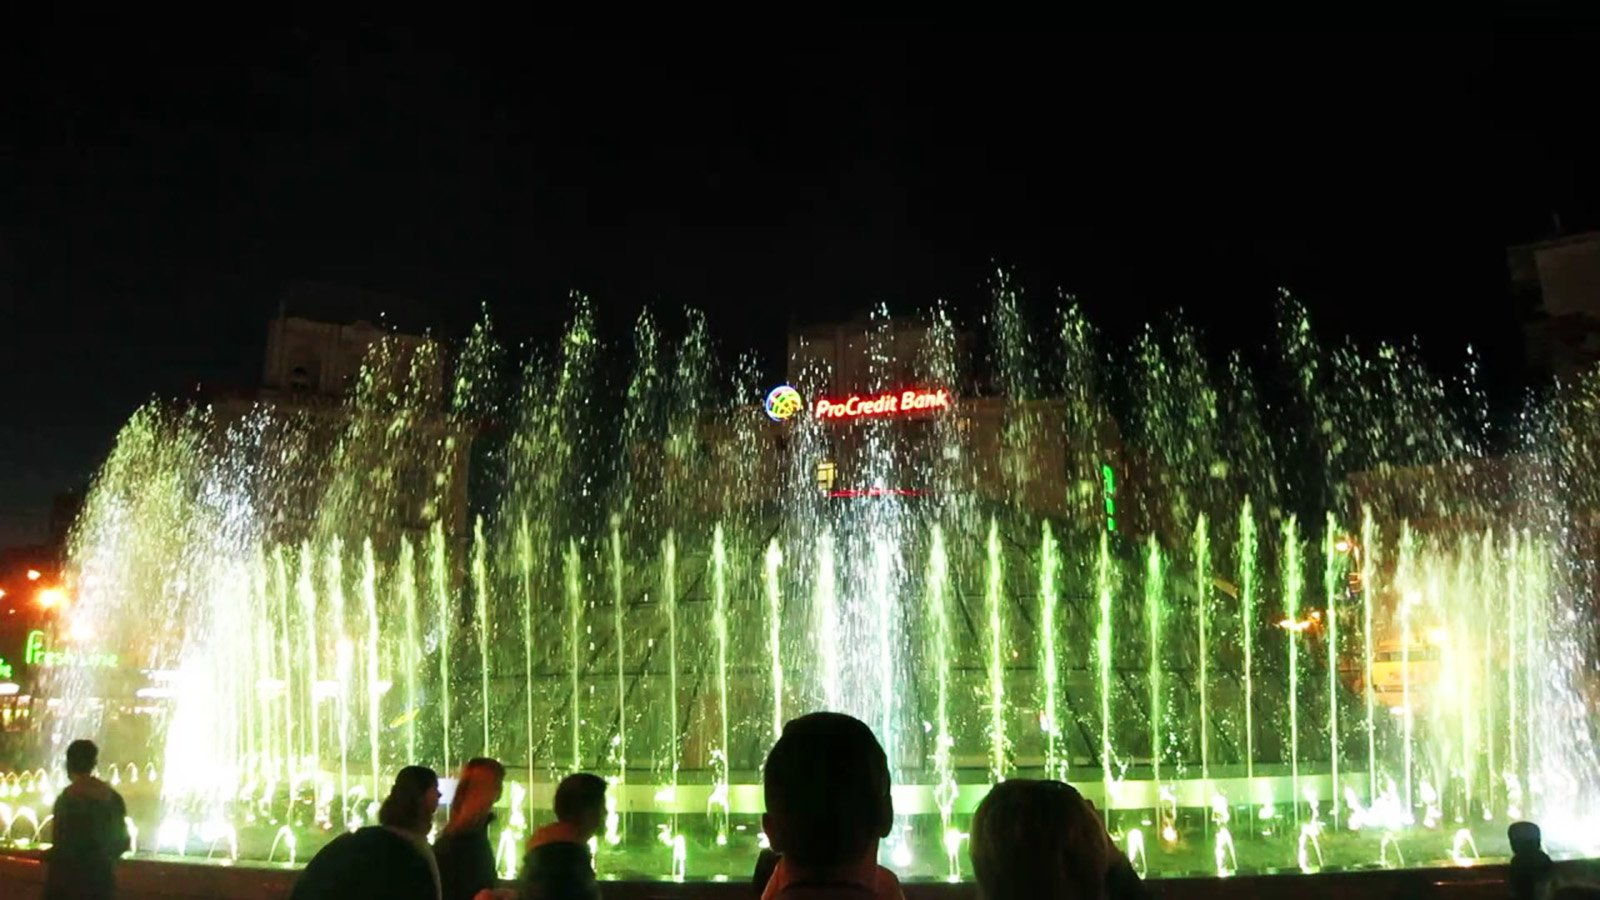 How to watch the dancing fountains in Kiev